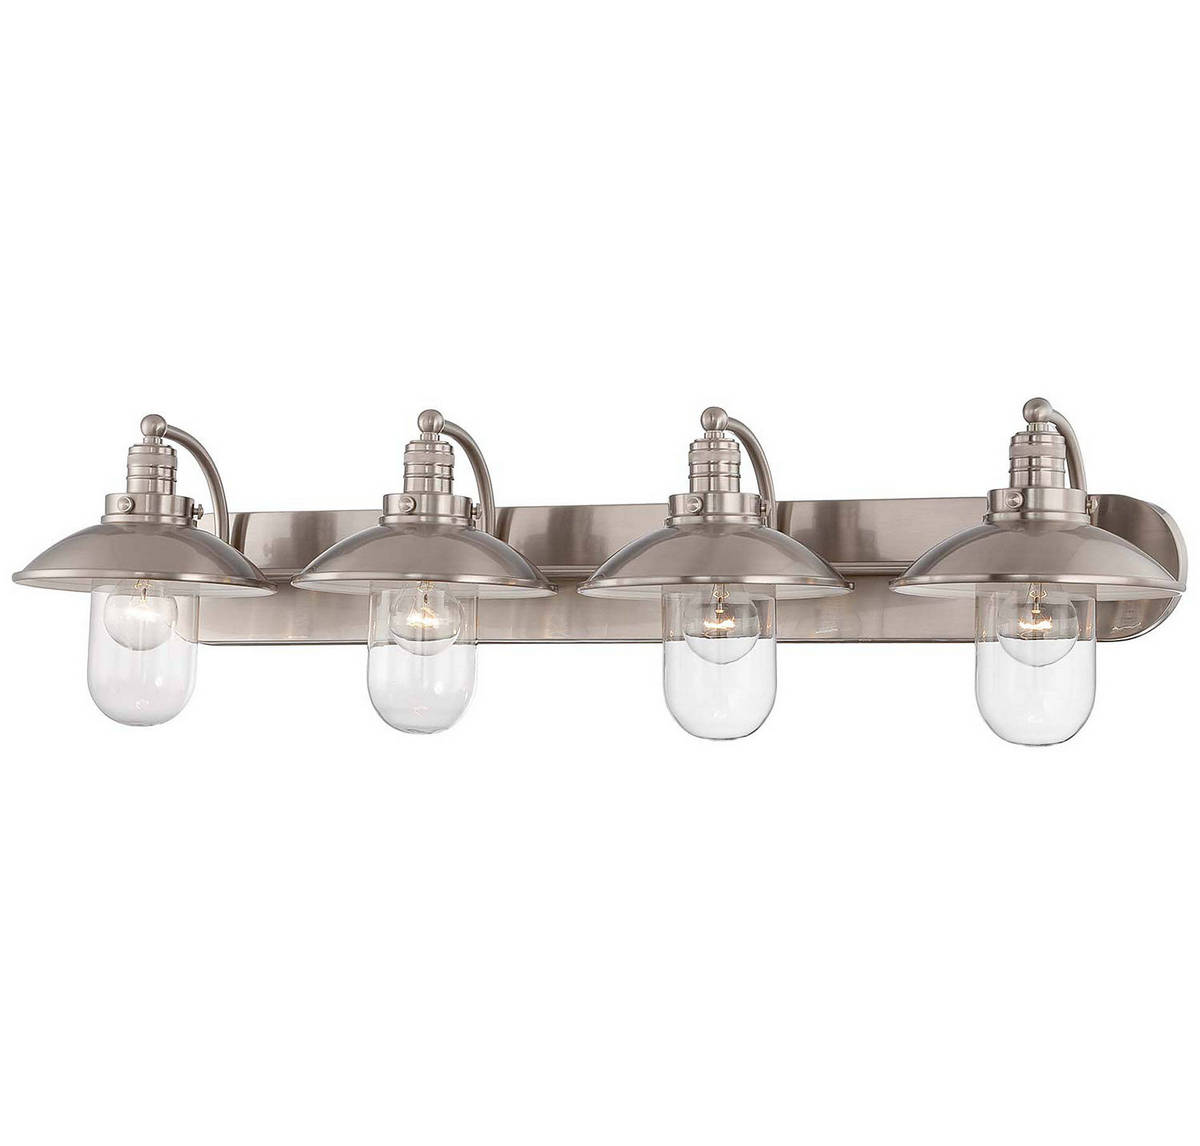 Minka lavery downtown edison 4 light bath vanity in brushed nickel minka lavery downtown edison 4 light bath vanity in brushed nickel bath lights wall lights arubaitofo Image collections